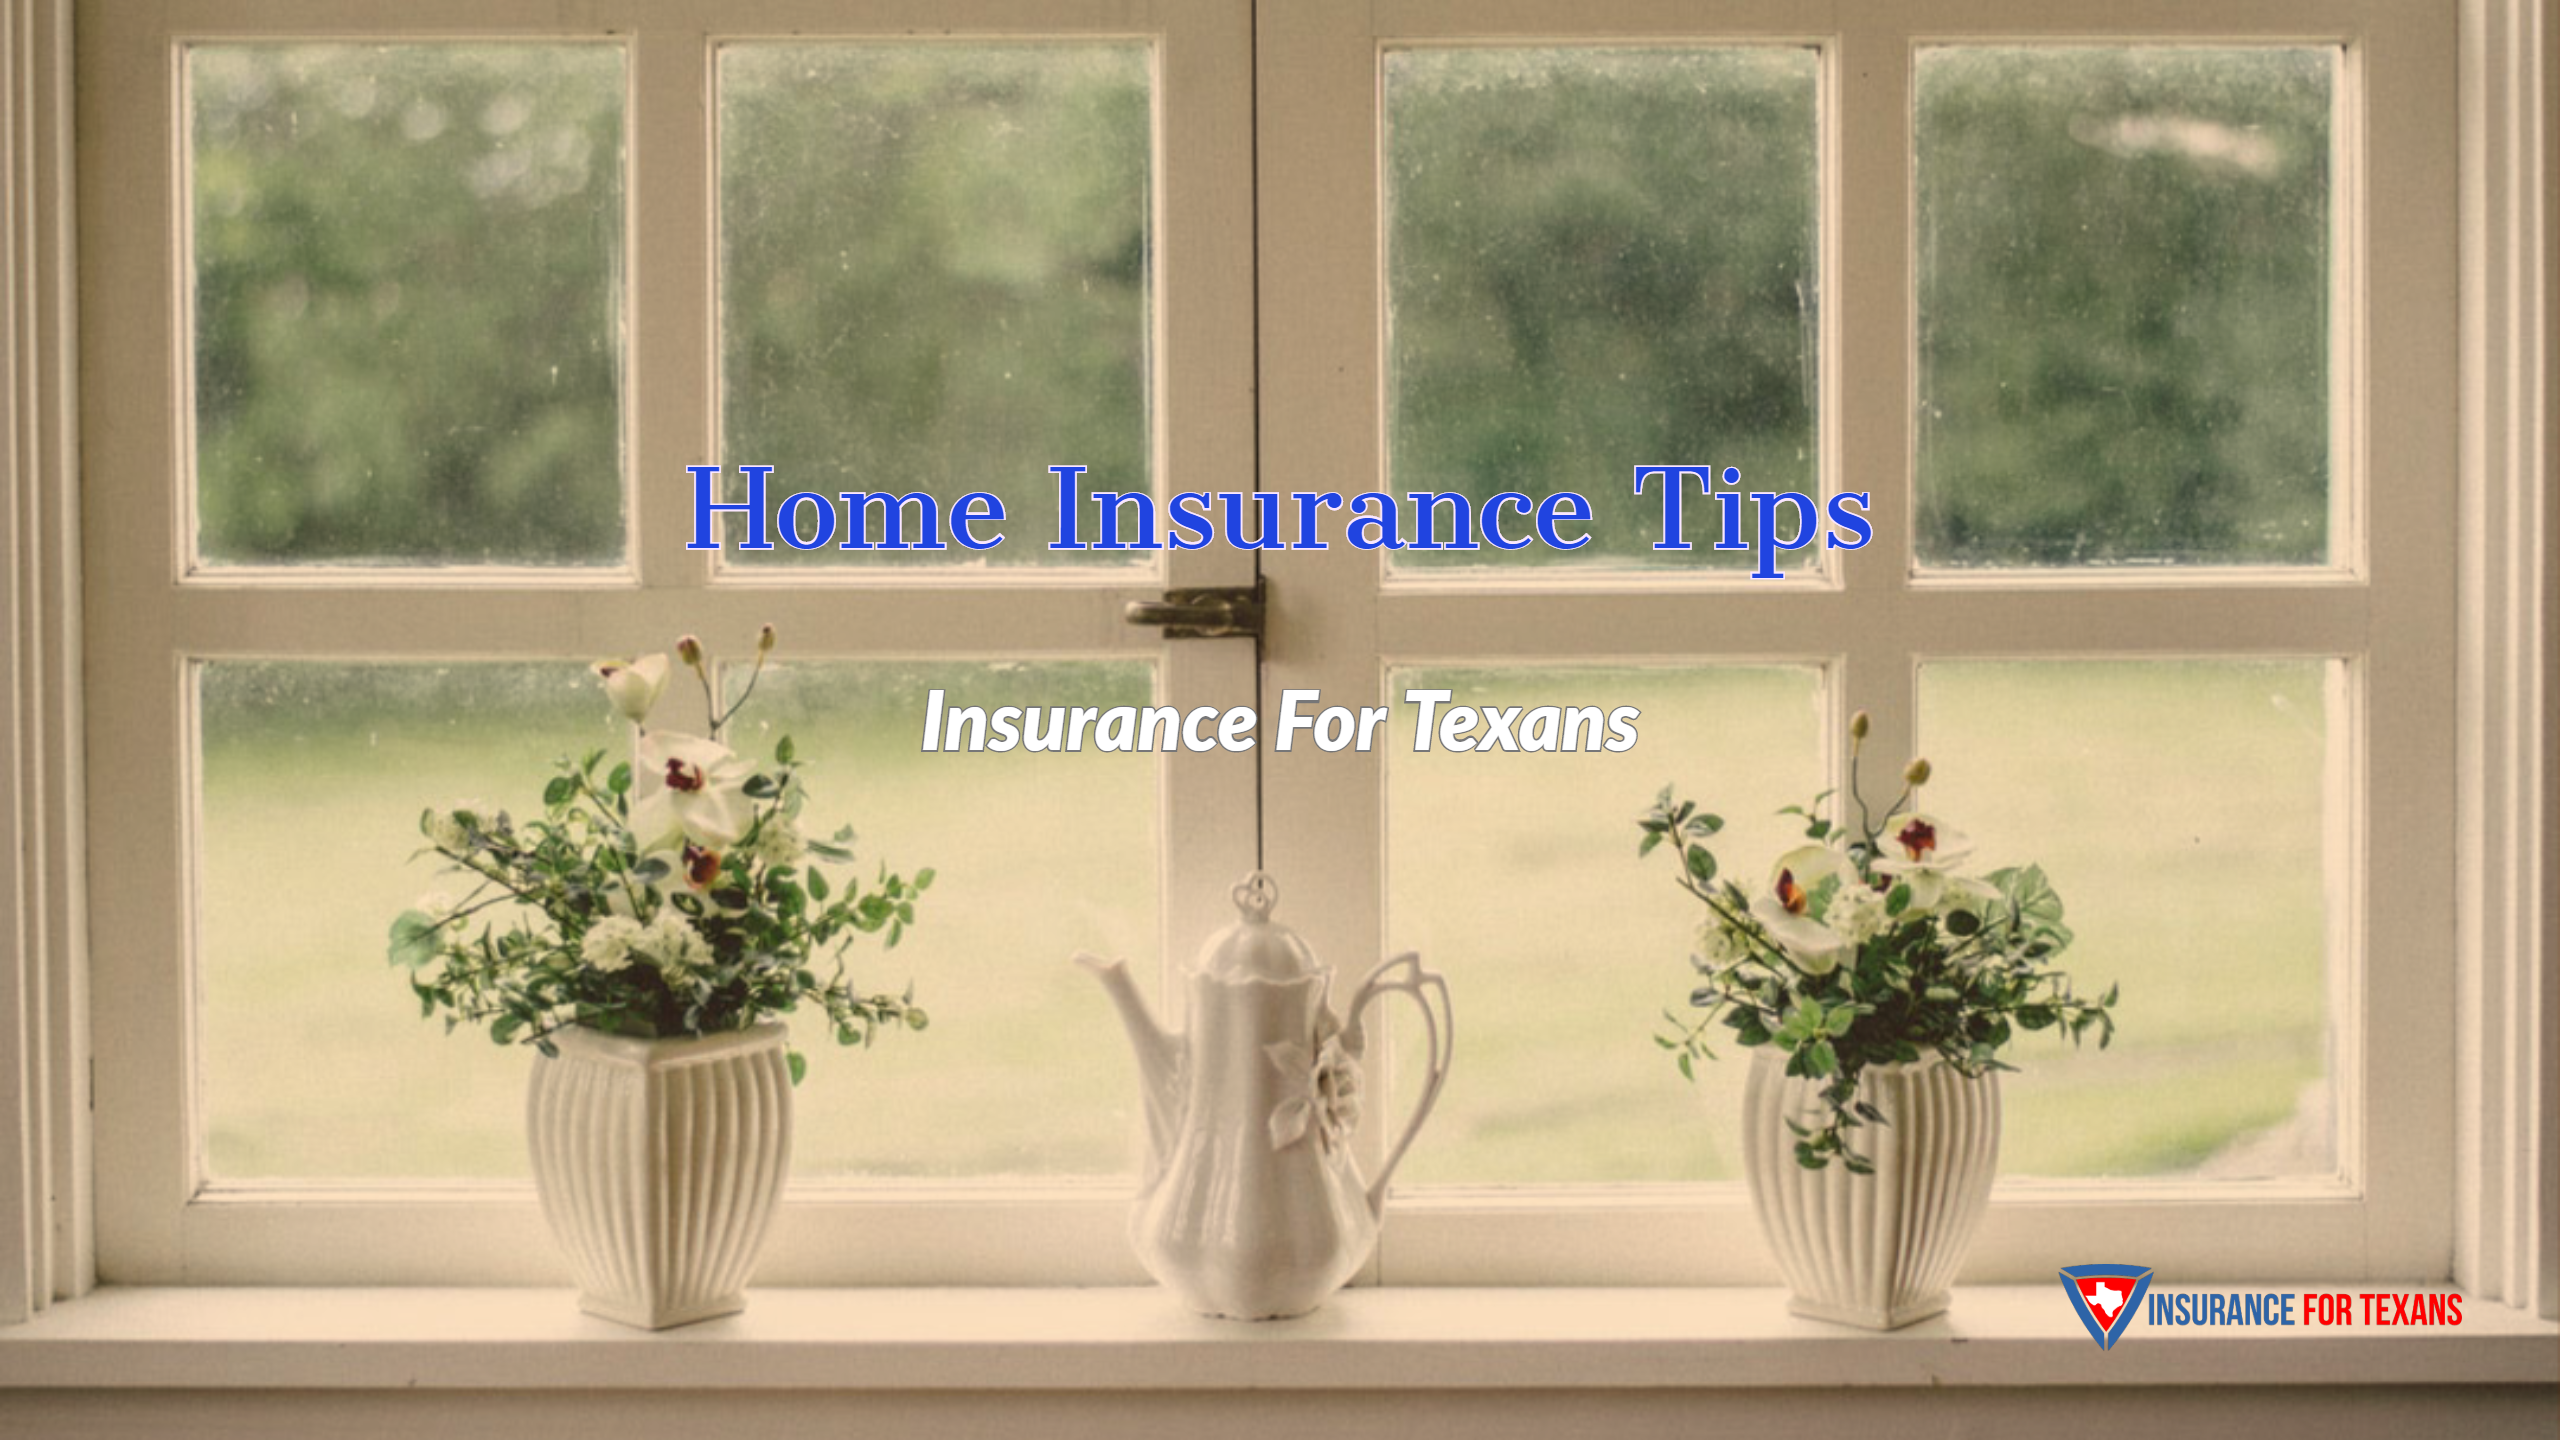 Will My Homeowners Insurance Cover My ER Visits For Tripping